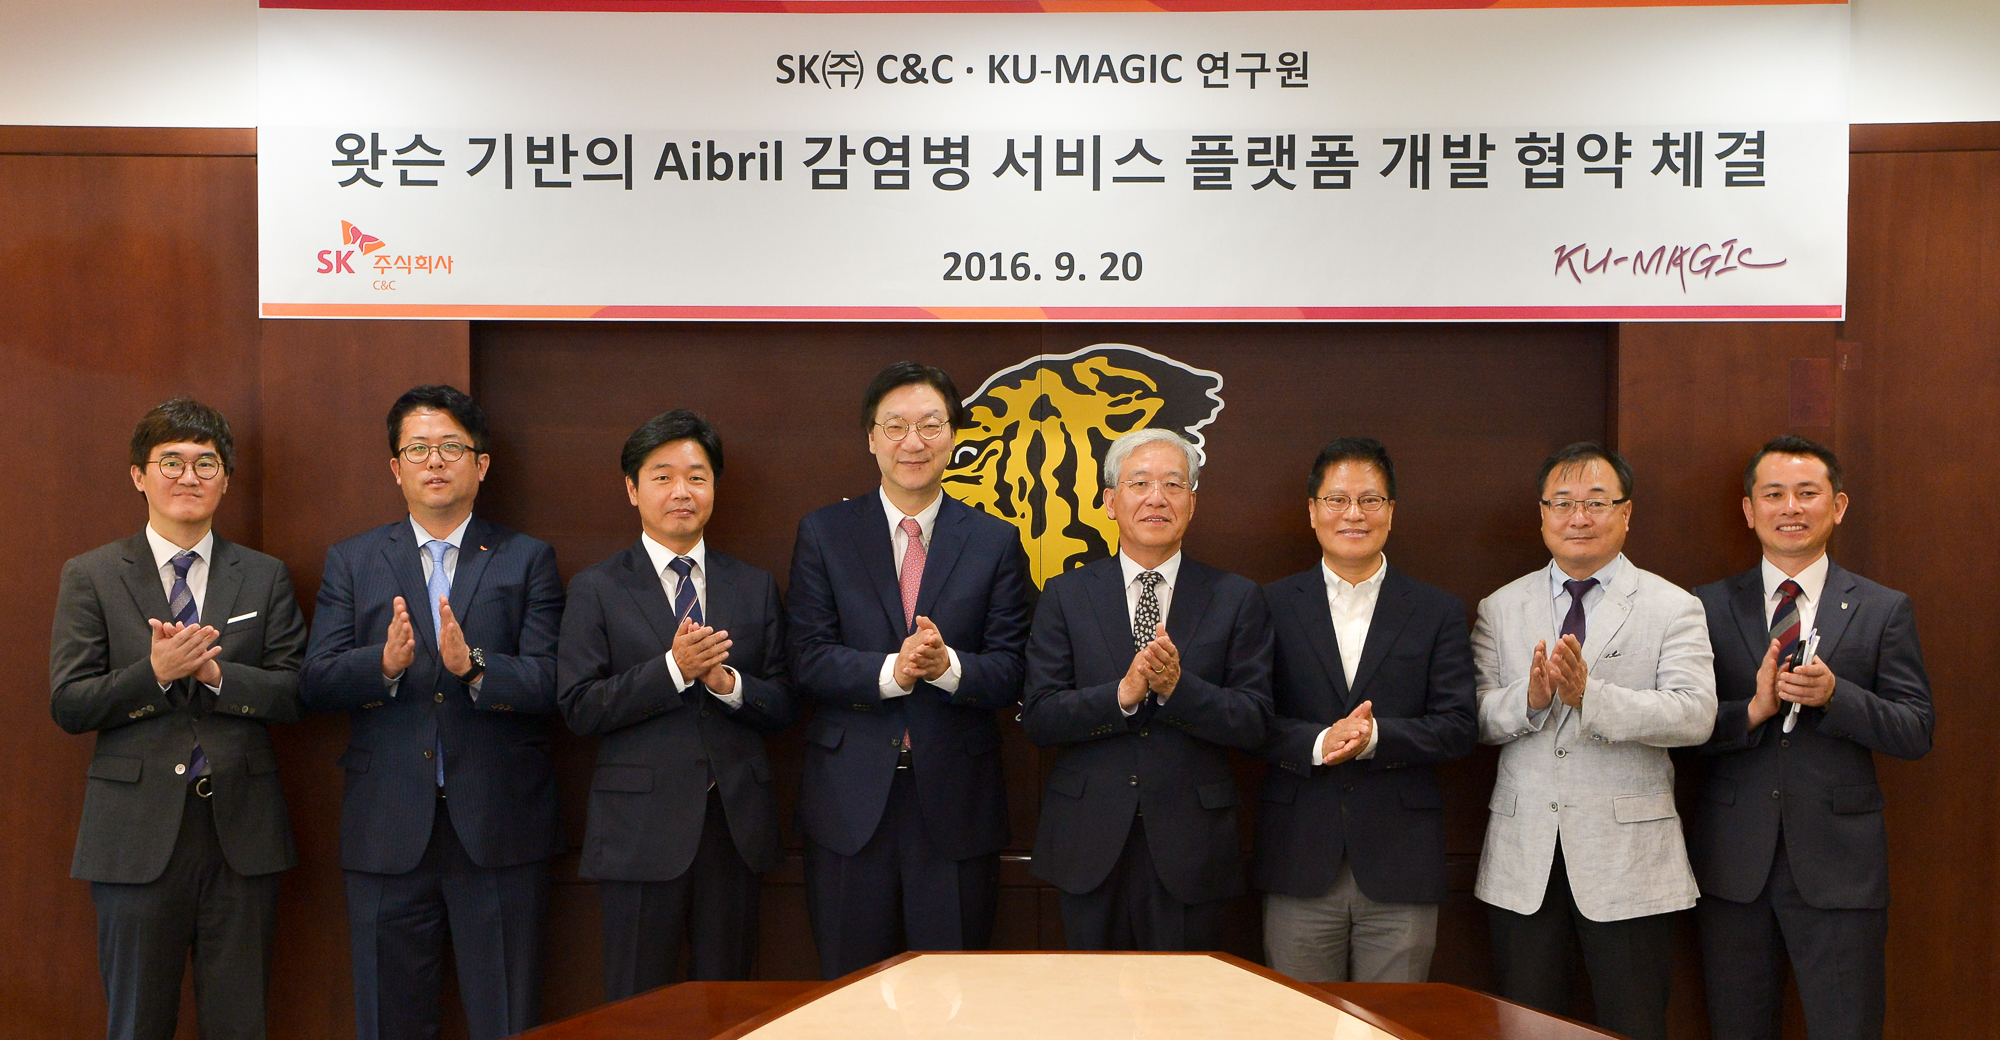 Lee Ho-soo, President of IT services business at SK Holdings C&C (fourth from right) and Kim Jin-sung, Director of KU-MAGIC Lab at Anam Campus of Korea University(fourth from left) pose for a group photo.